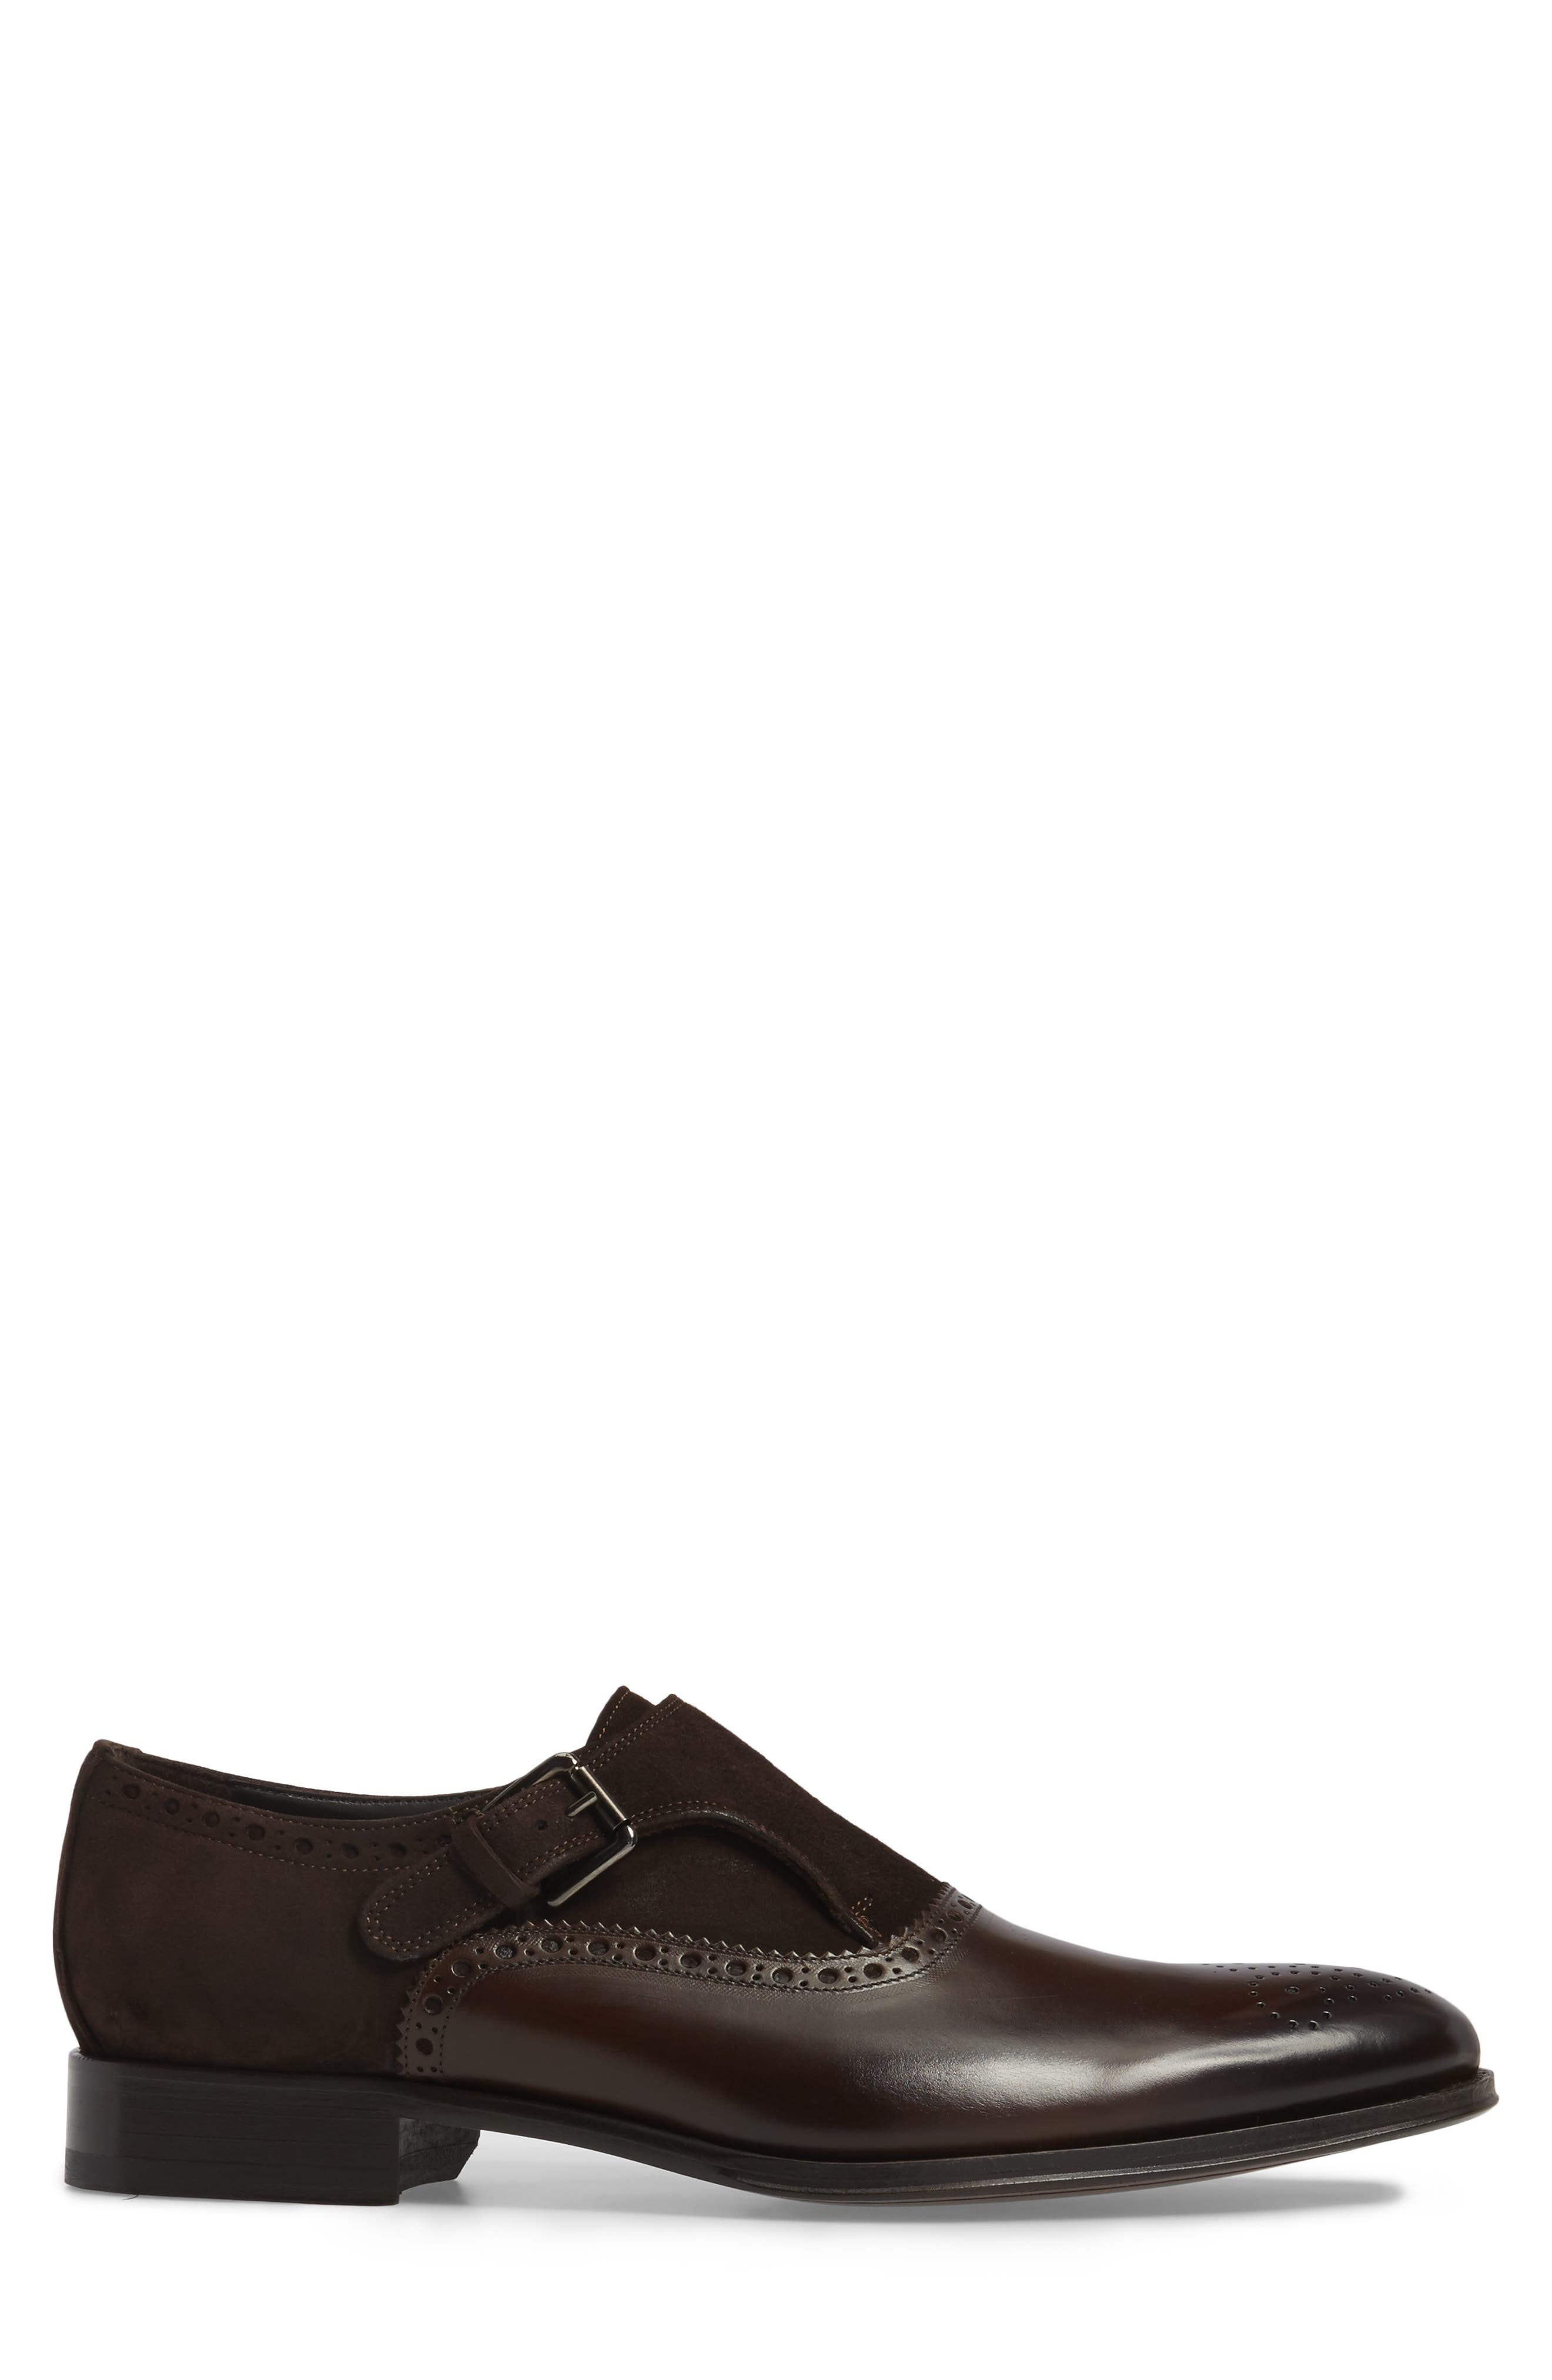 Arcadia Monk Strap Shoe,                             Alternate thumbnail 3, color,                             Brown Leather/ Suede